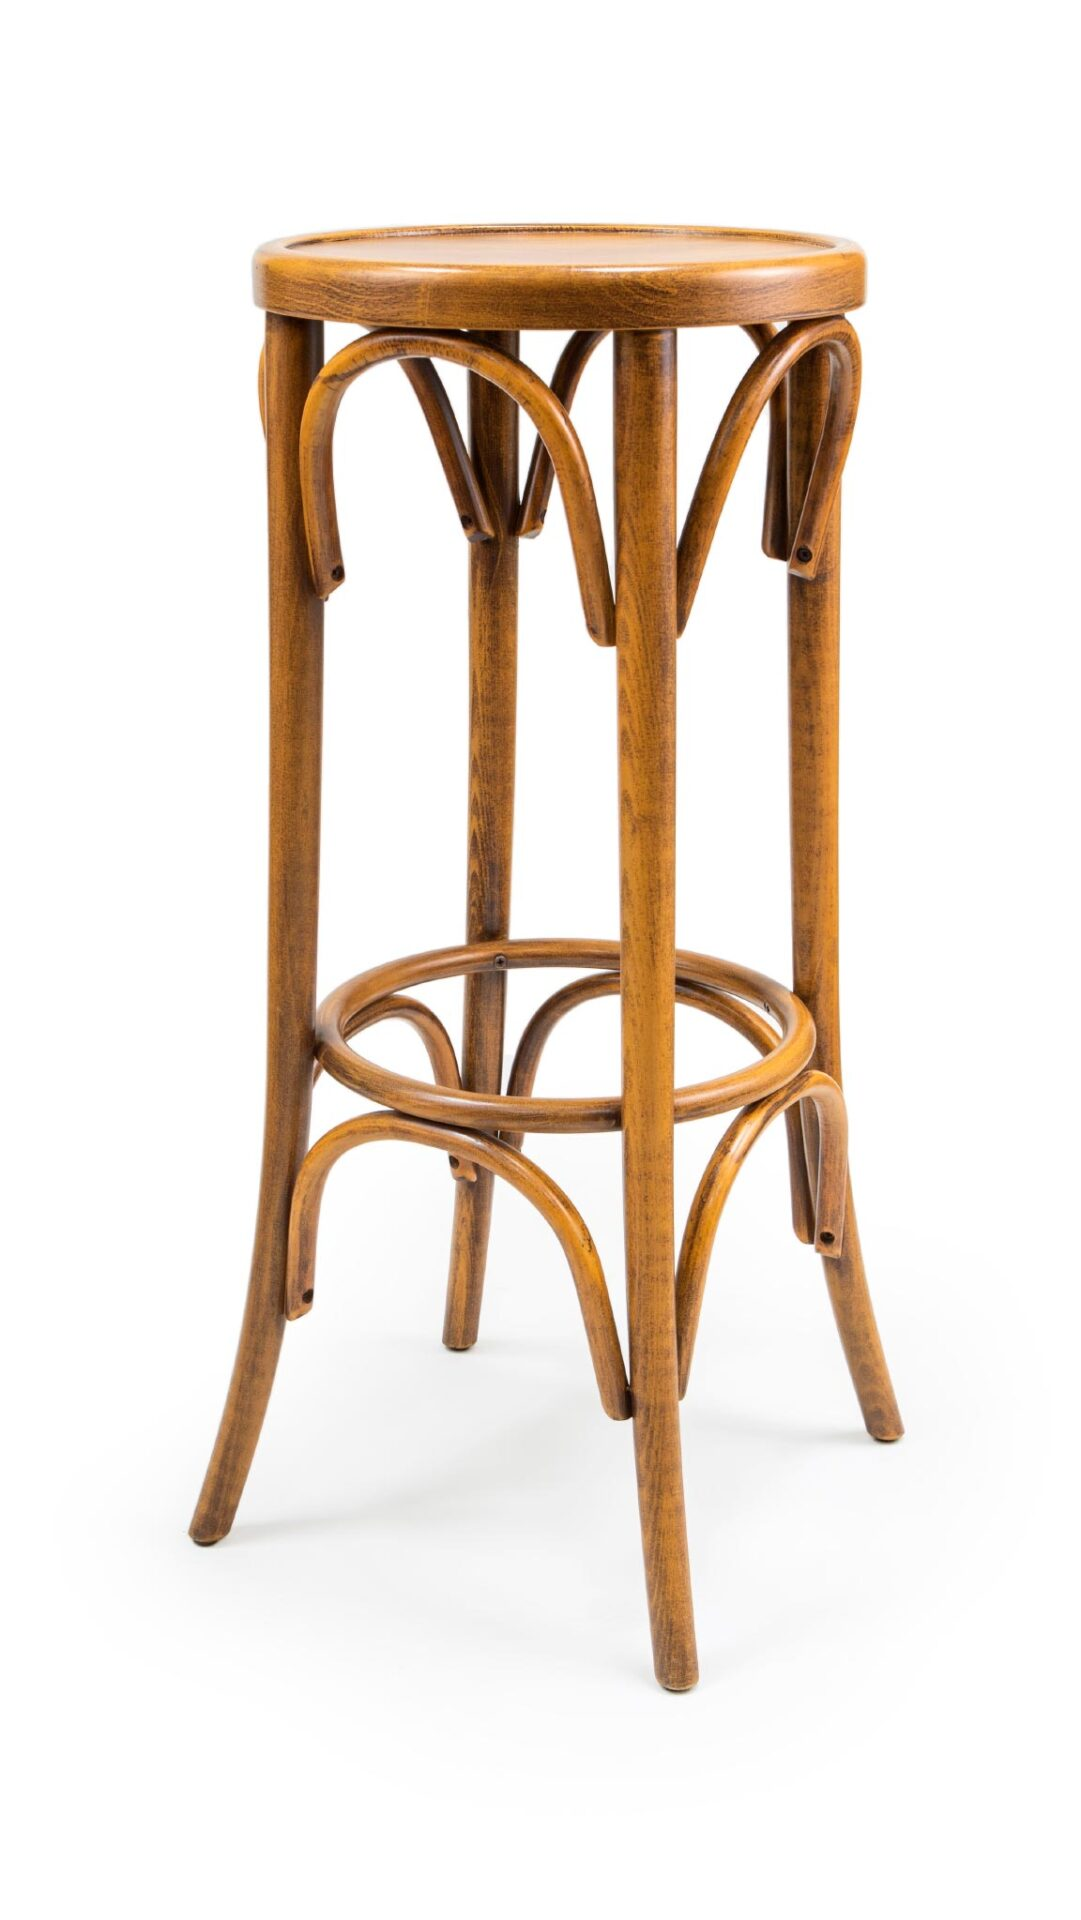 Solid Barstool made of Beech - 1329B, BL